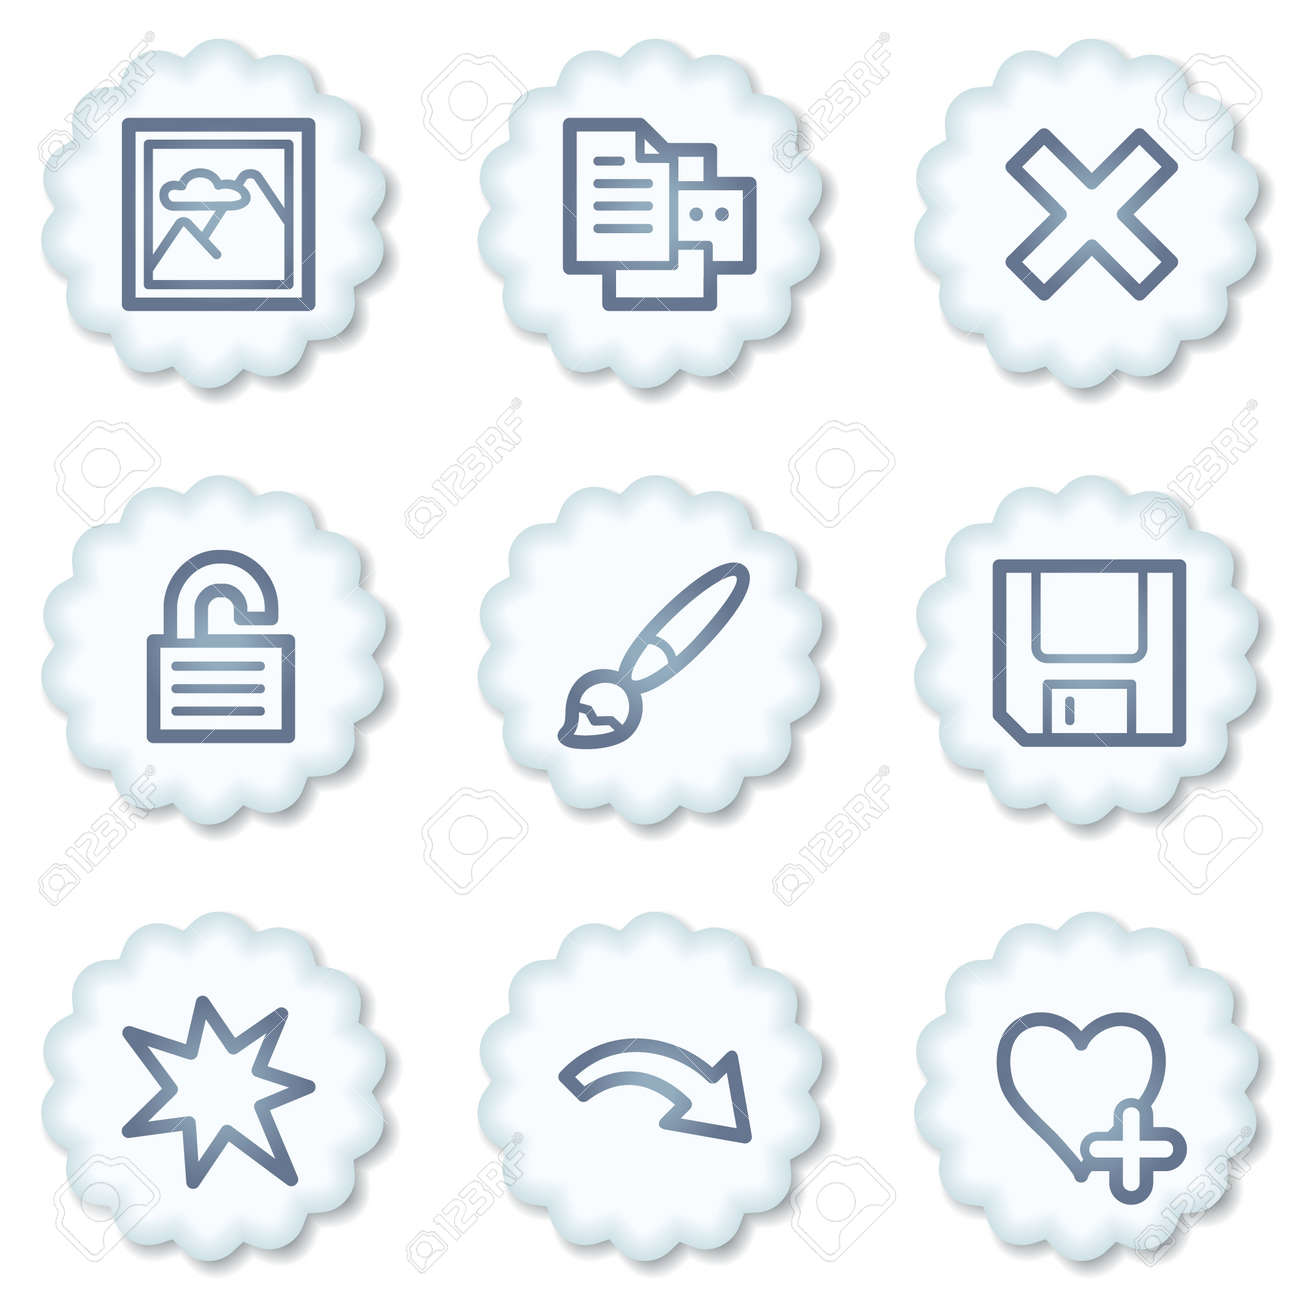 Image viewer web icons set 2, white buttons Stock Photo - 7339075